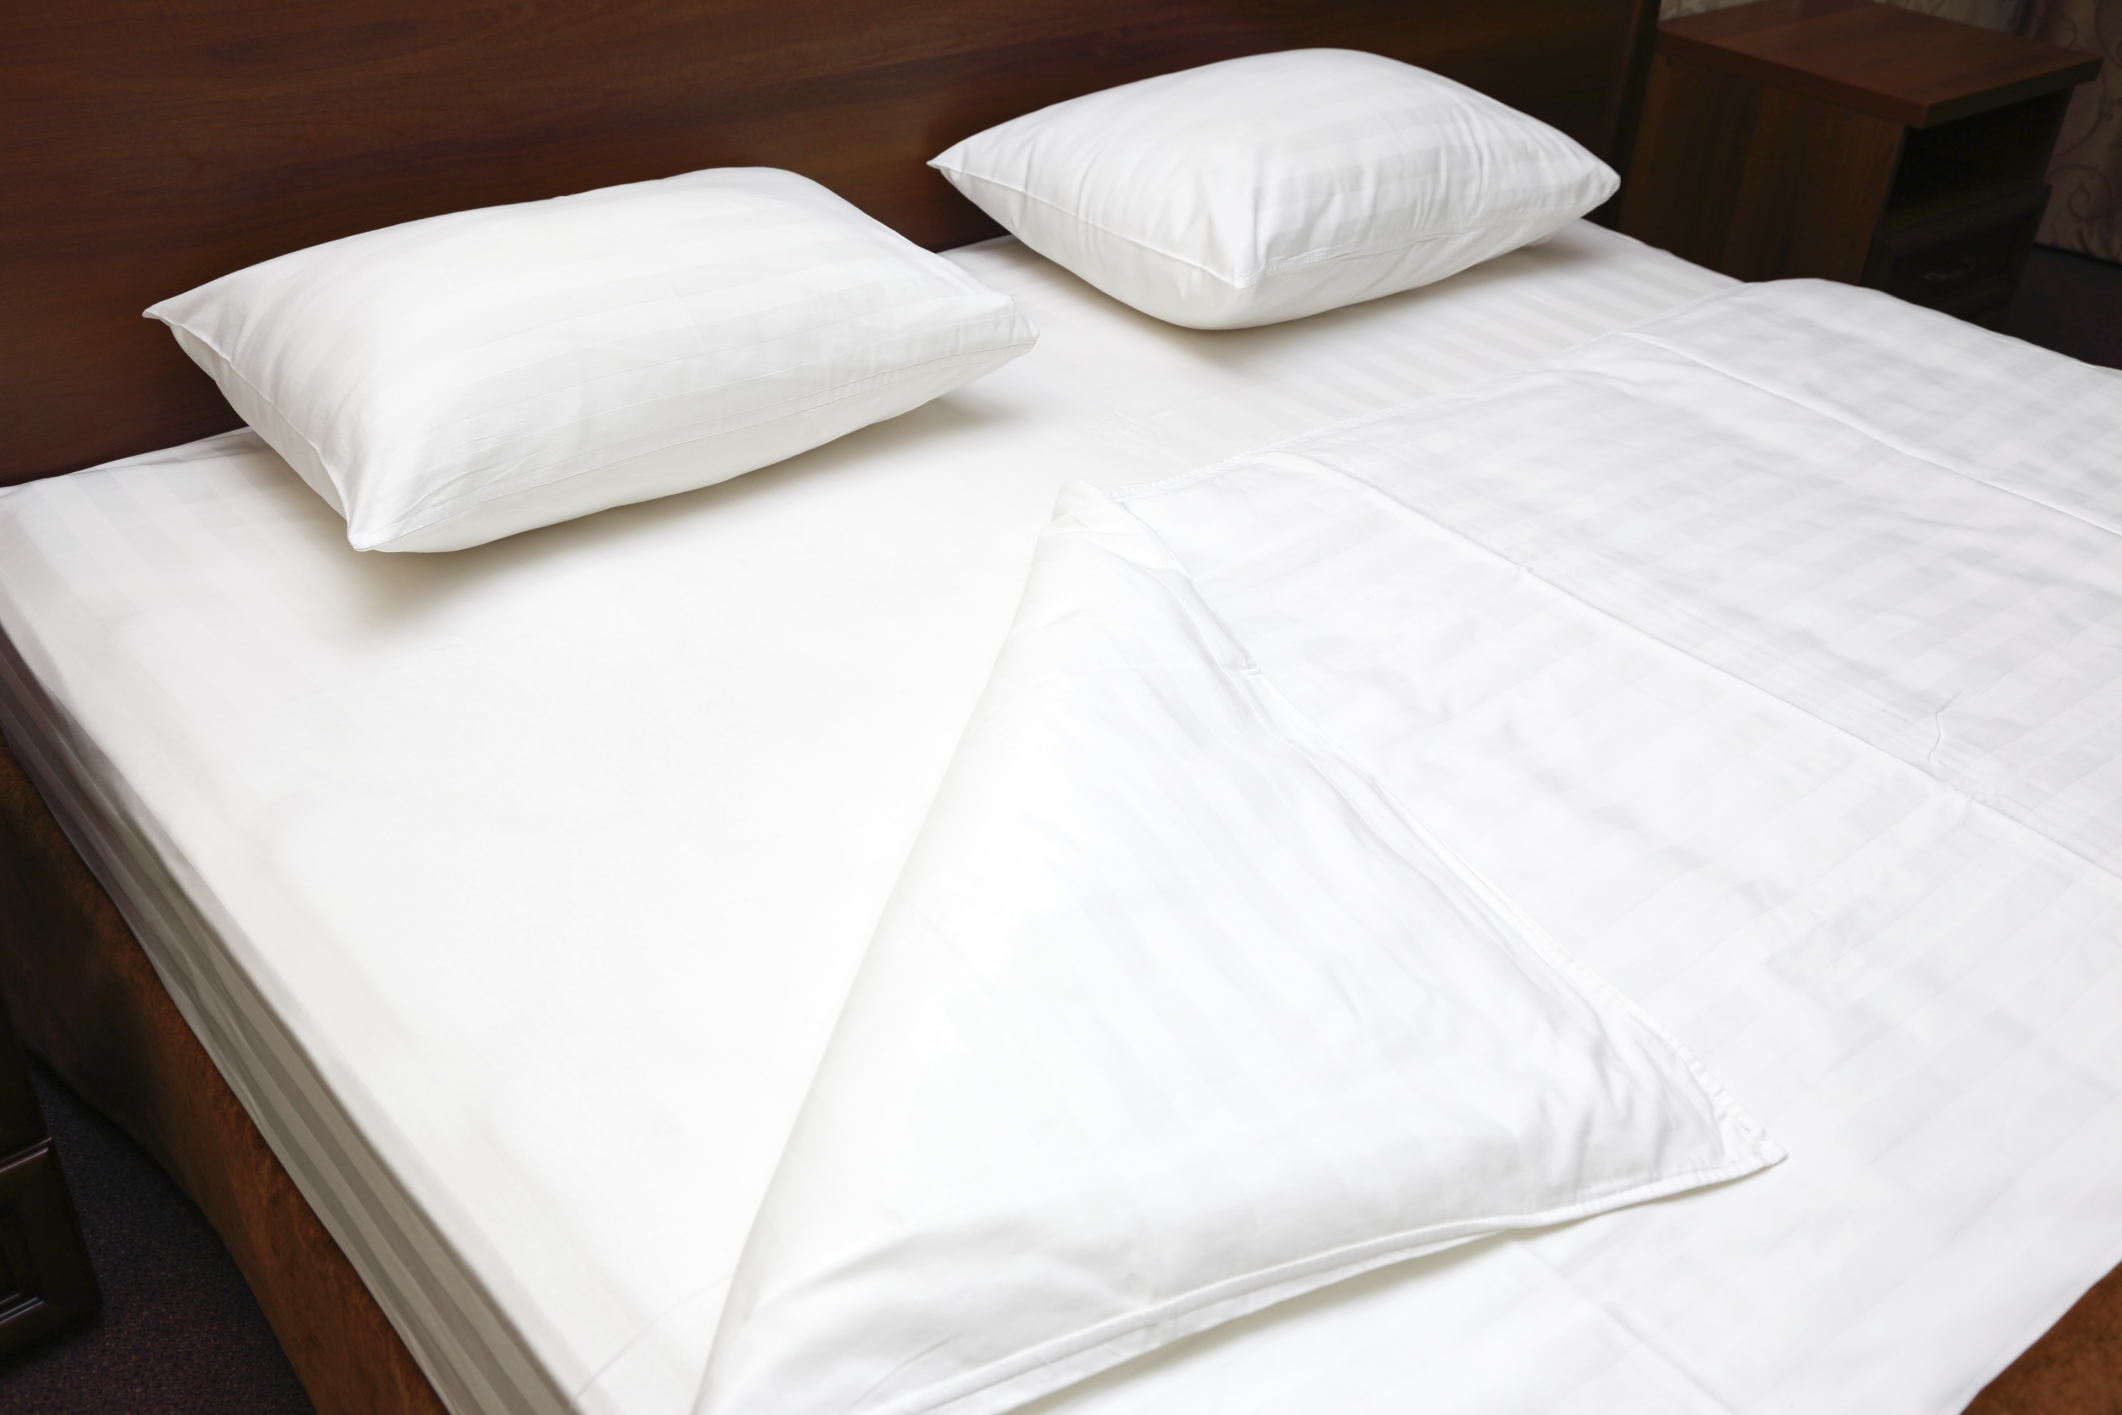 Health Issues With Memory Foam Mattresses Healthfully